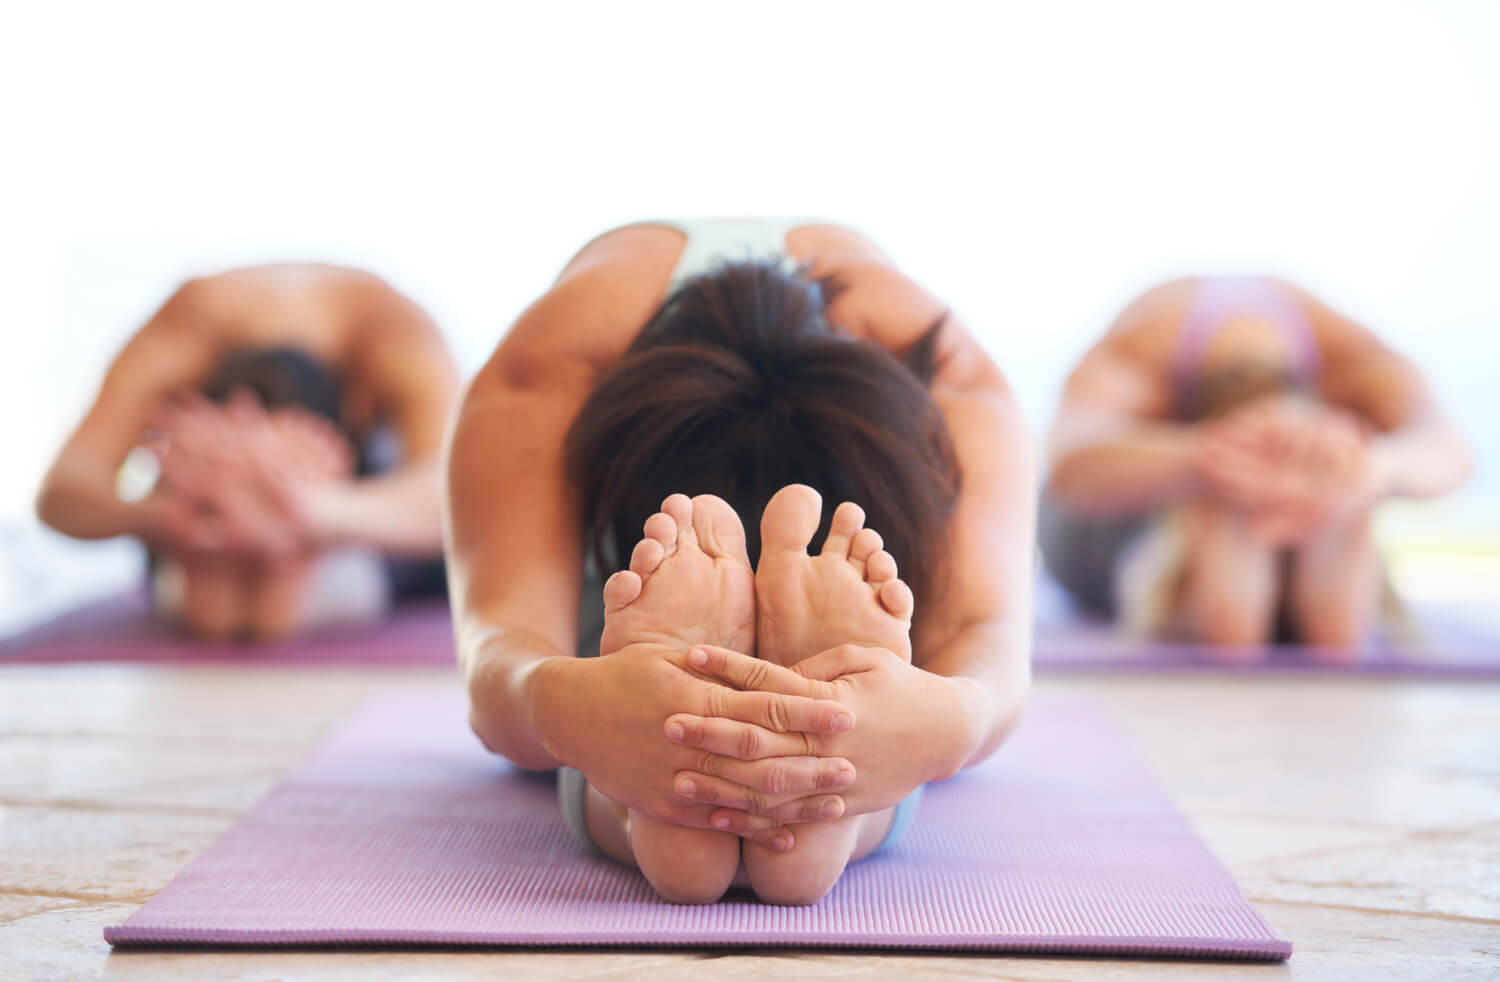 YOGA - Want to improve your flexibility, reduce stress and eliminate distractions? Our yoga instructors will introduce students to 40+ fundamental yoga poses. Our yoga program enhances self-confidence and self-discipline, reduce stress, and allows students to feel part of a healthy, non-competitive group